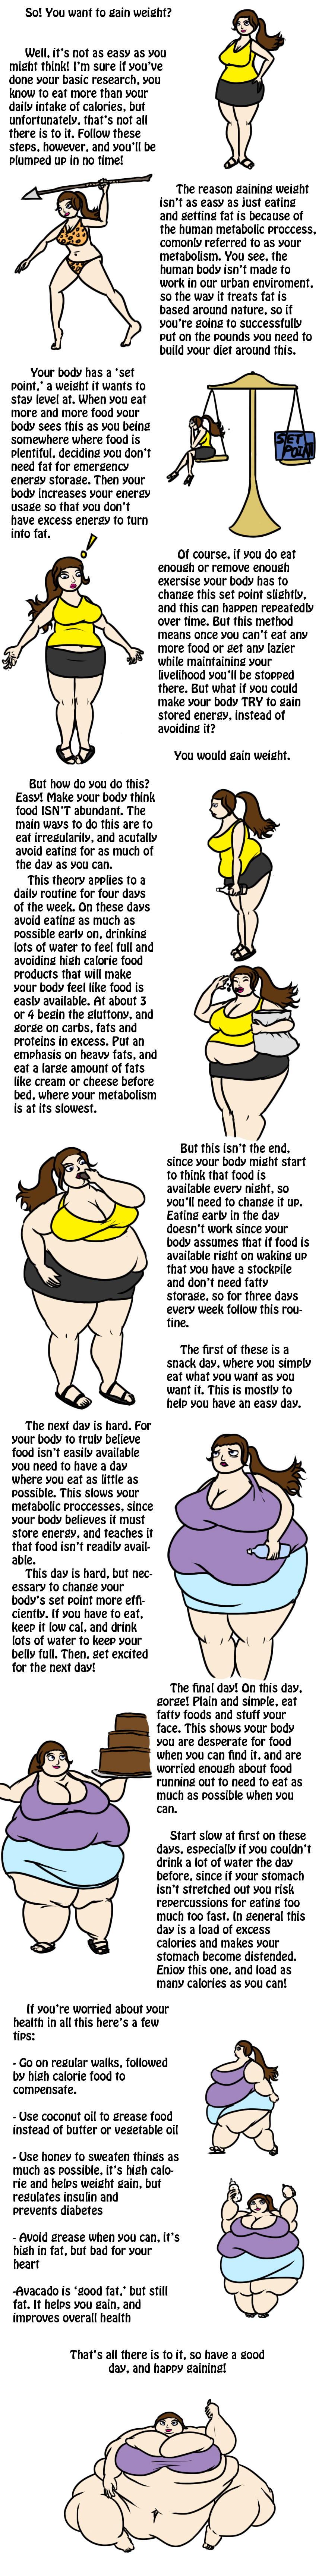 How to Gain Weight by ExtraBaggageClaim